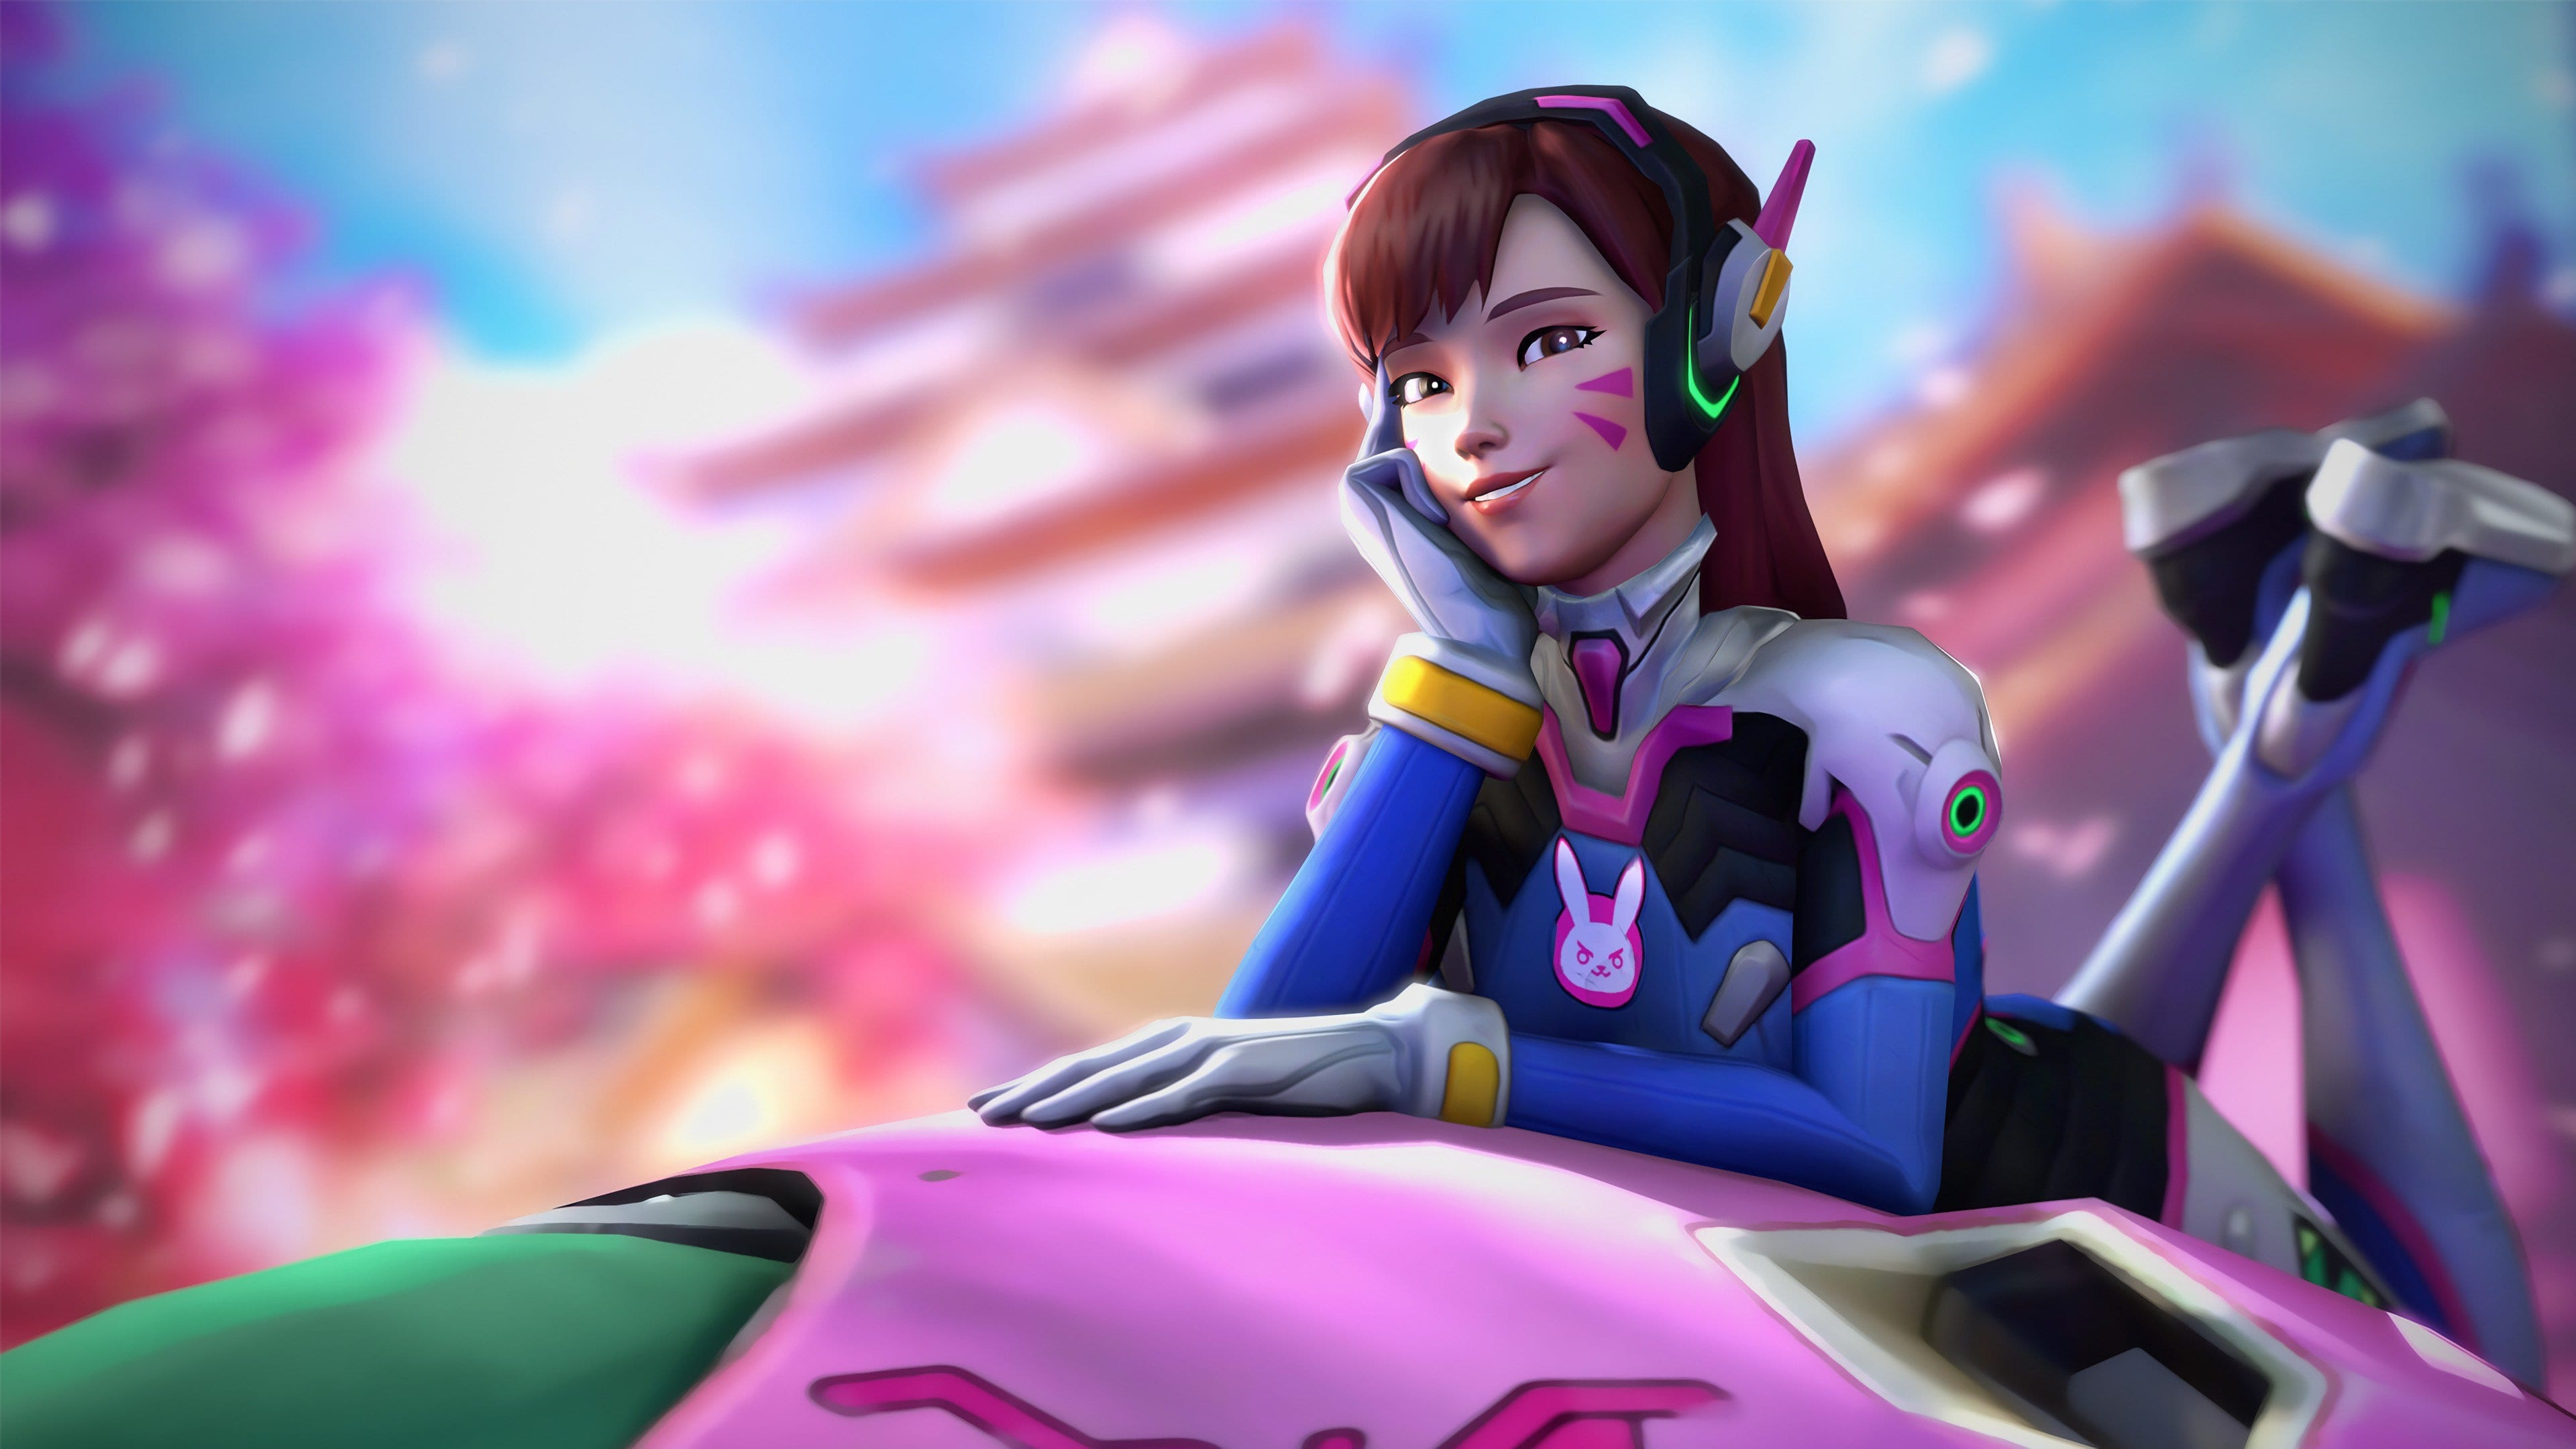 Overwatch : D.Va Wallpapers hd